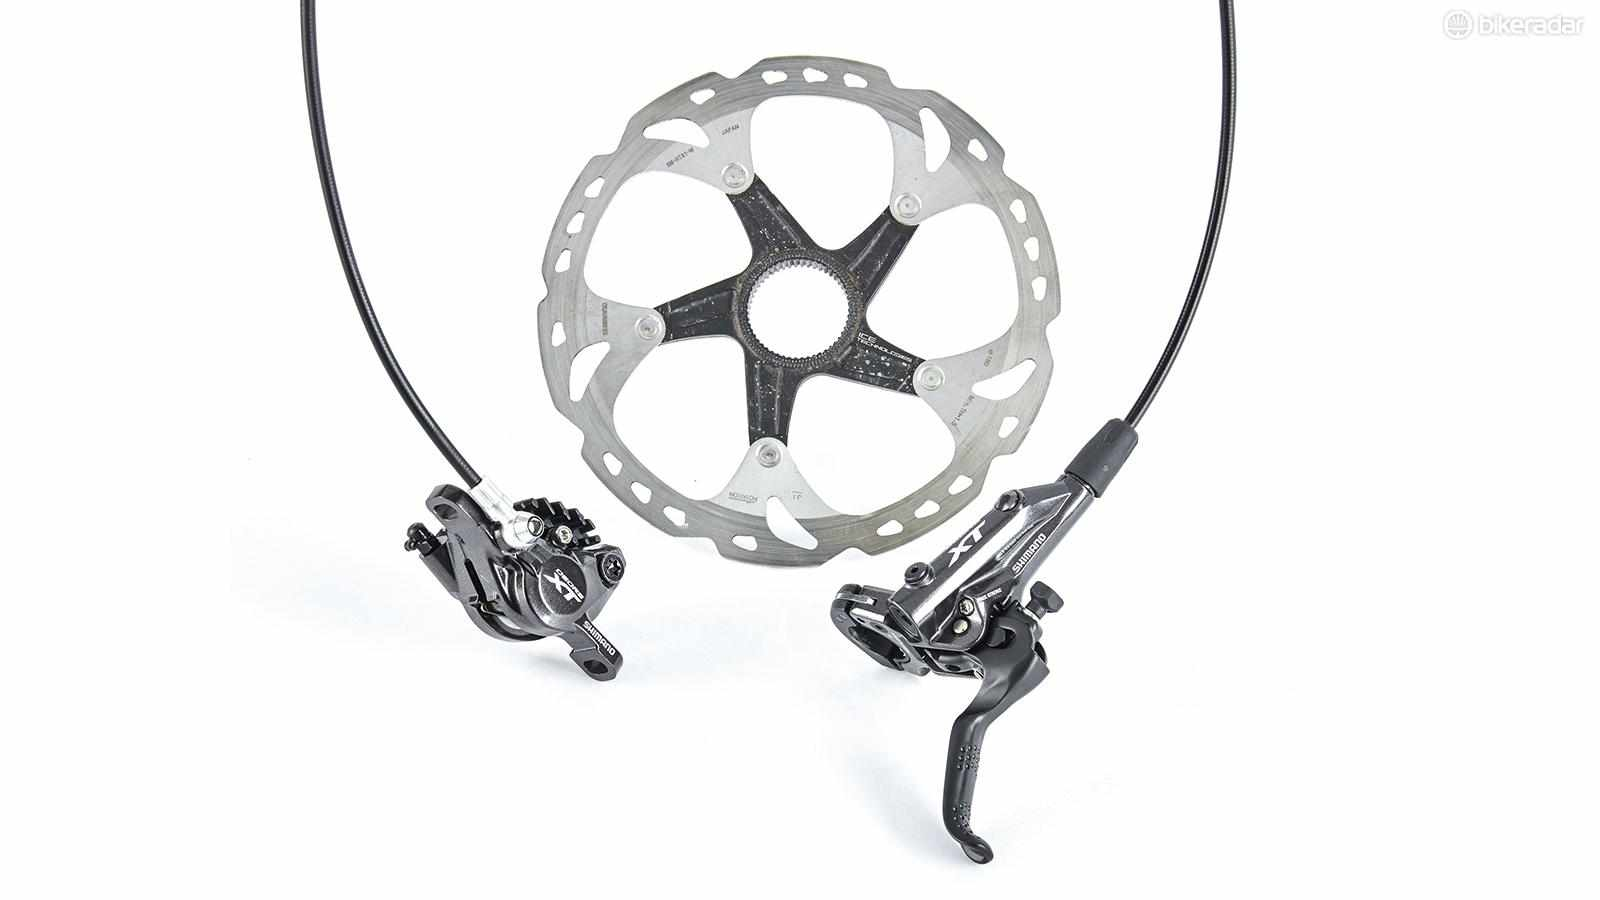 Shimano's XT 8000 MTB brakes are marred by bite-point inconsistencies